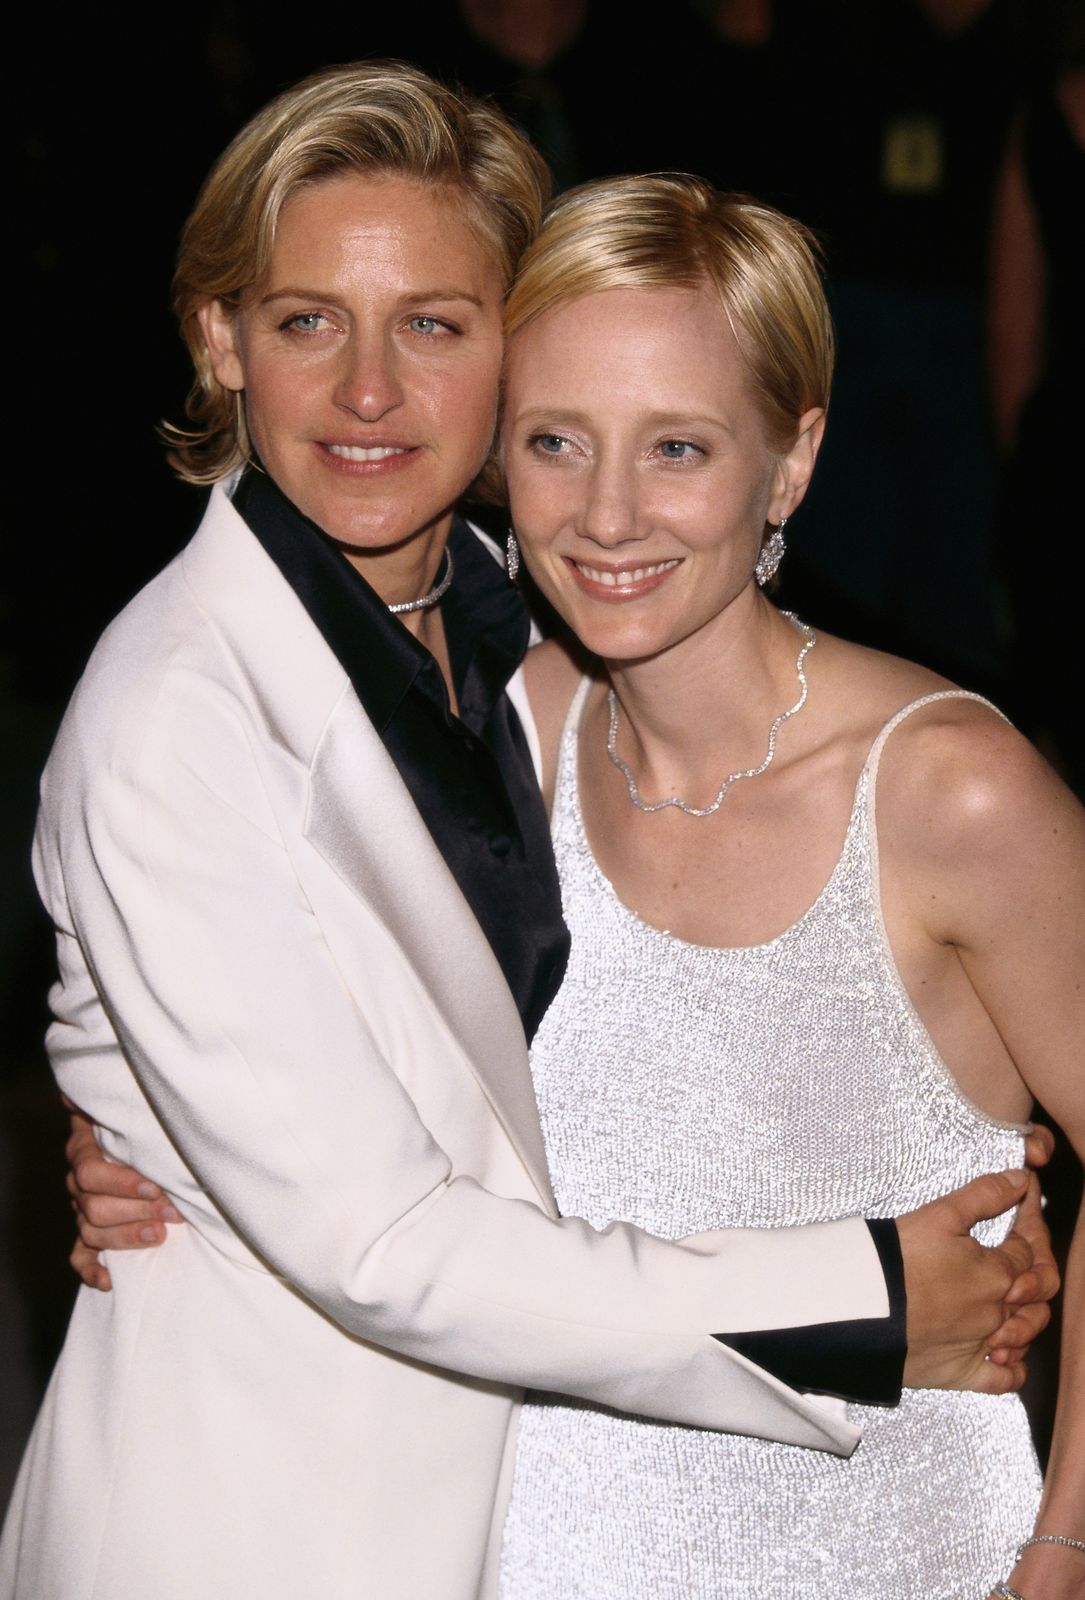 Ellen DeGeneres and Anne Heche at the 71st Annual Academy Awards - Elton John AIDS Foundation Party, 1999 | Photo: Getty Images